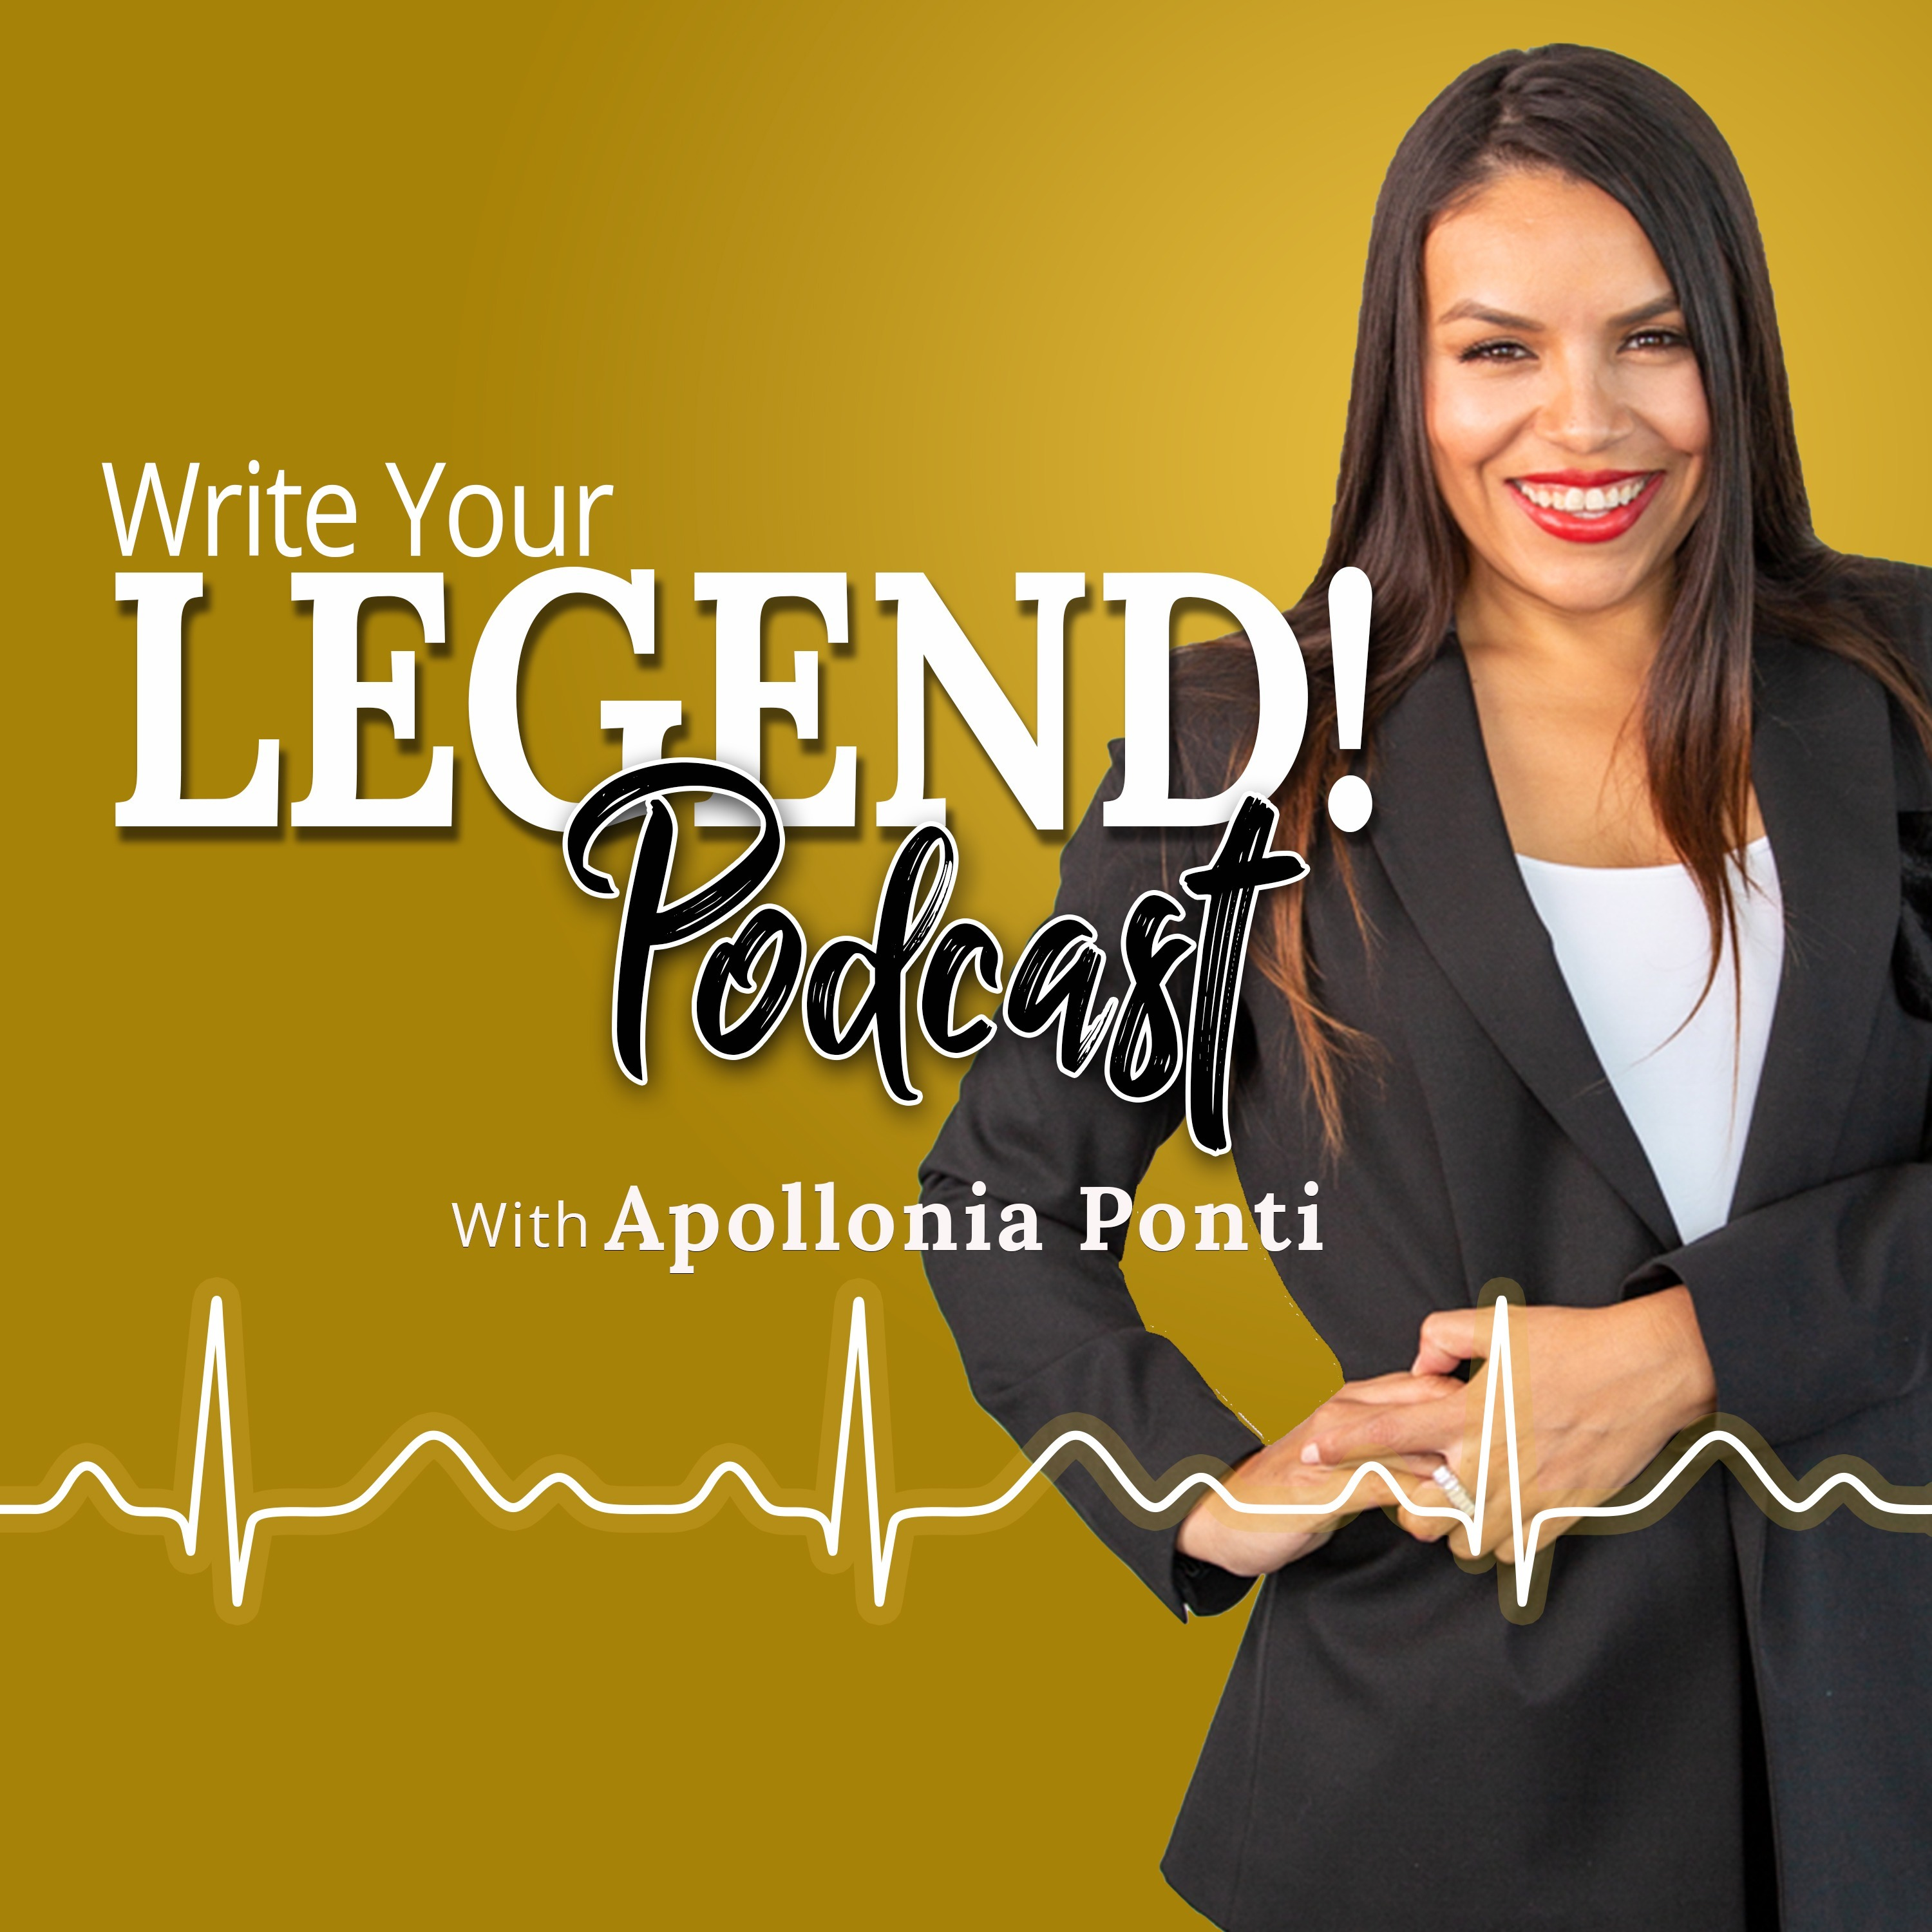 Why She Likes Older Men | Write Your Legend Podcast with Apollonia Ponti show art